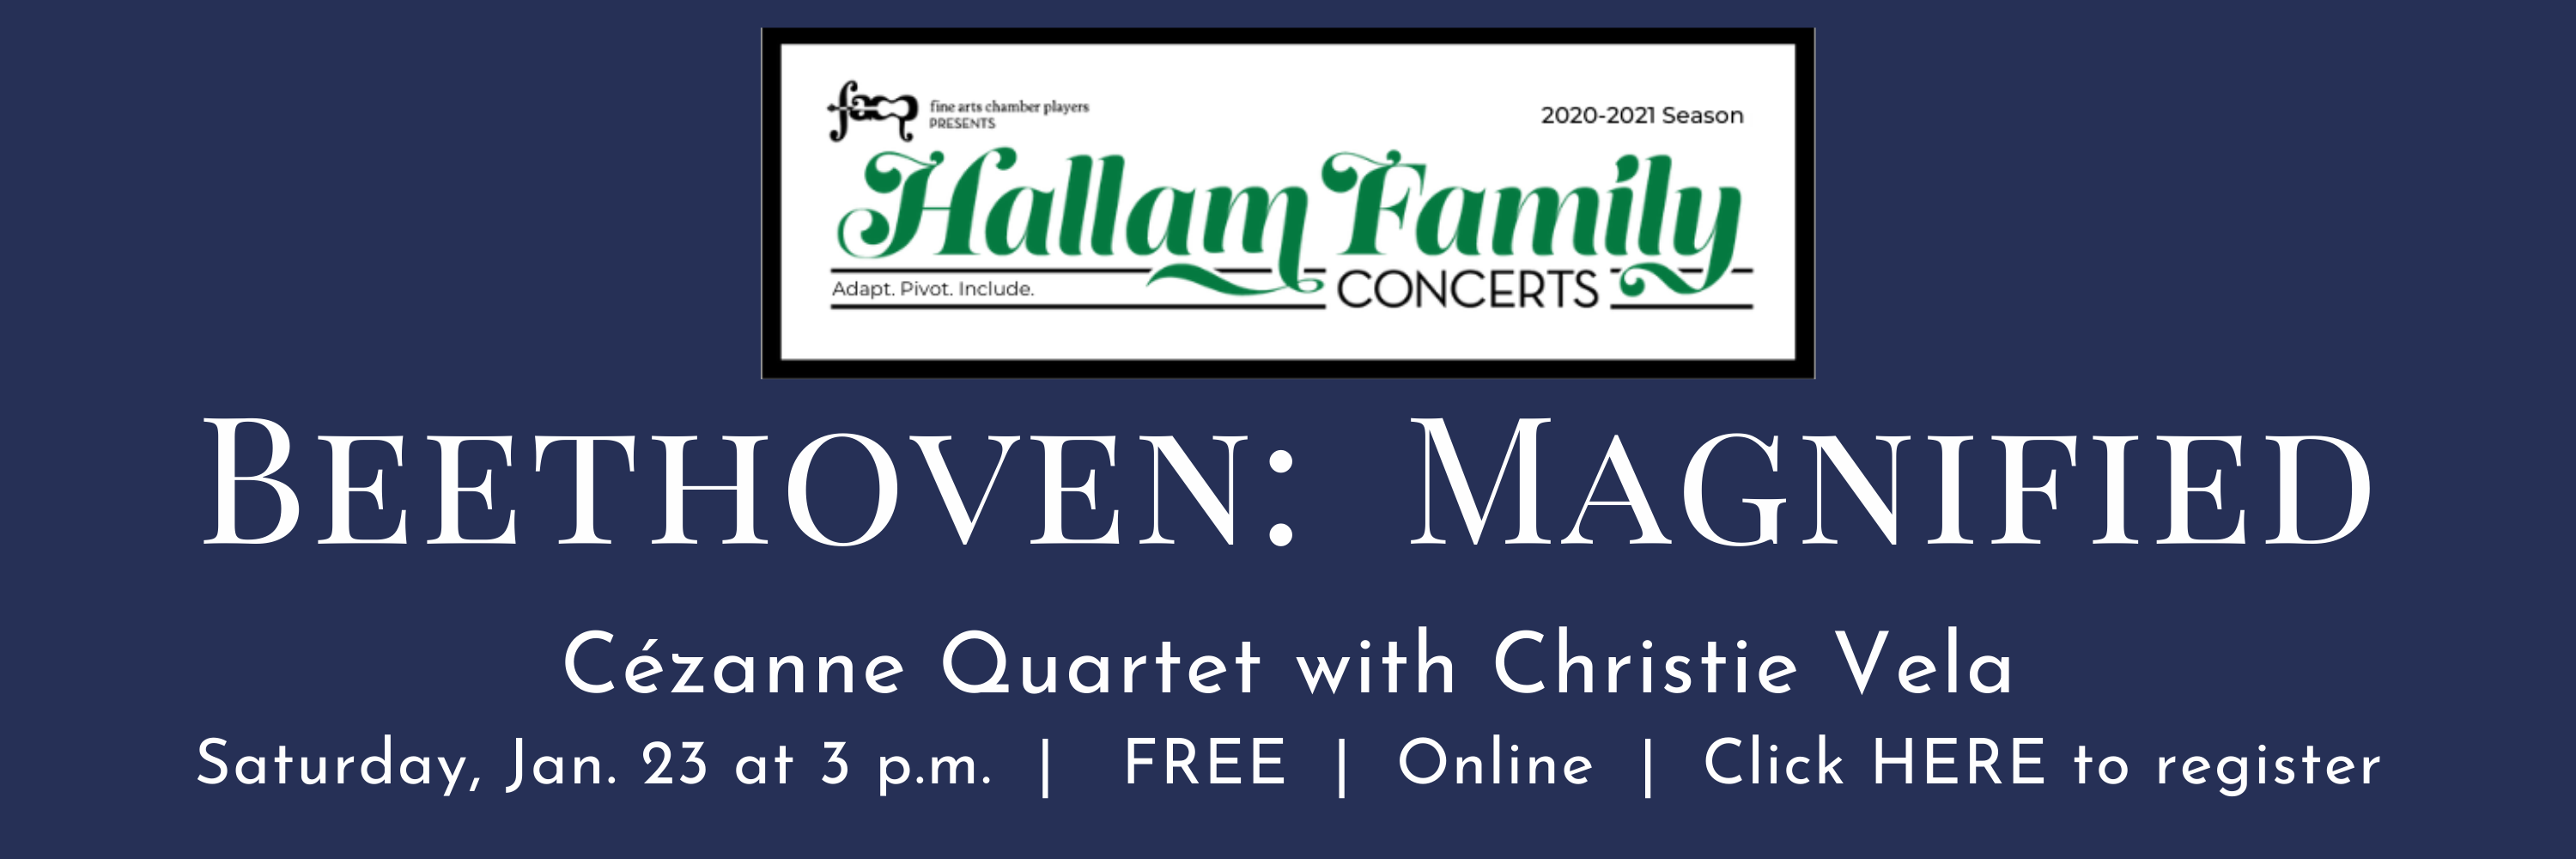 Beethoven: Magnified, Cezanne Quartet with Christie Vela, January 23, Click here to register